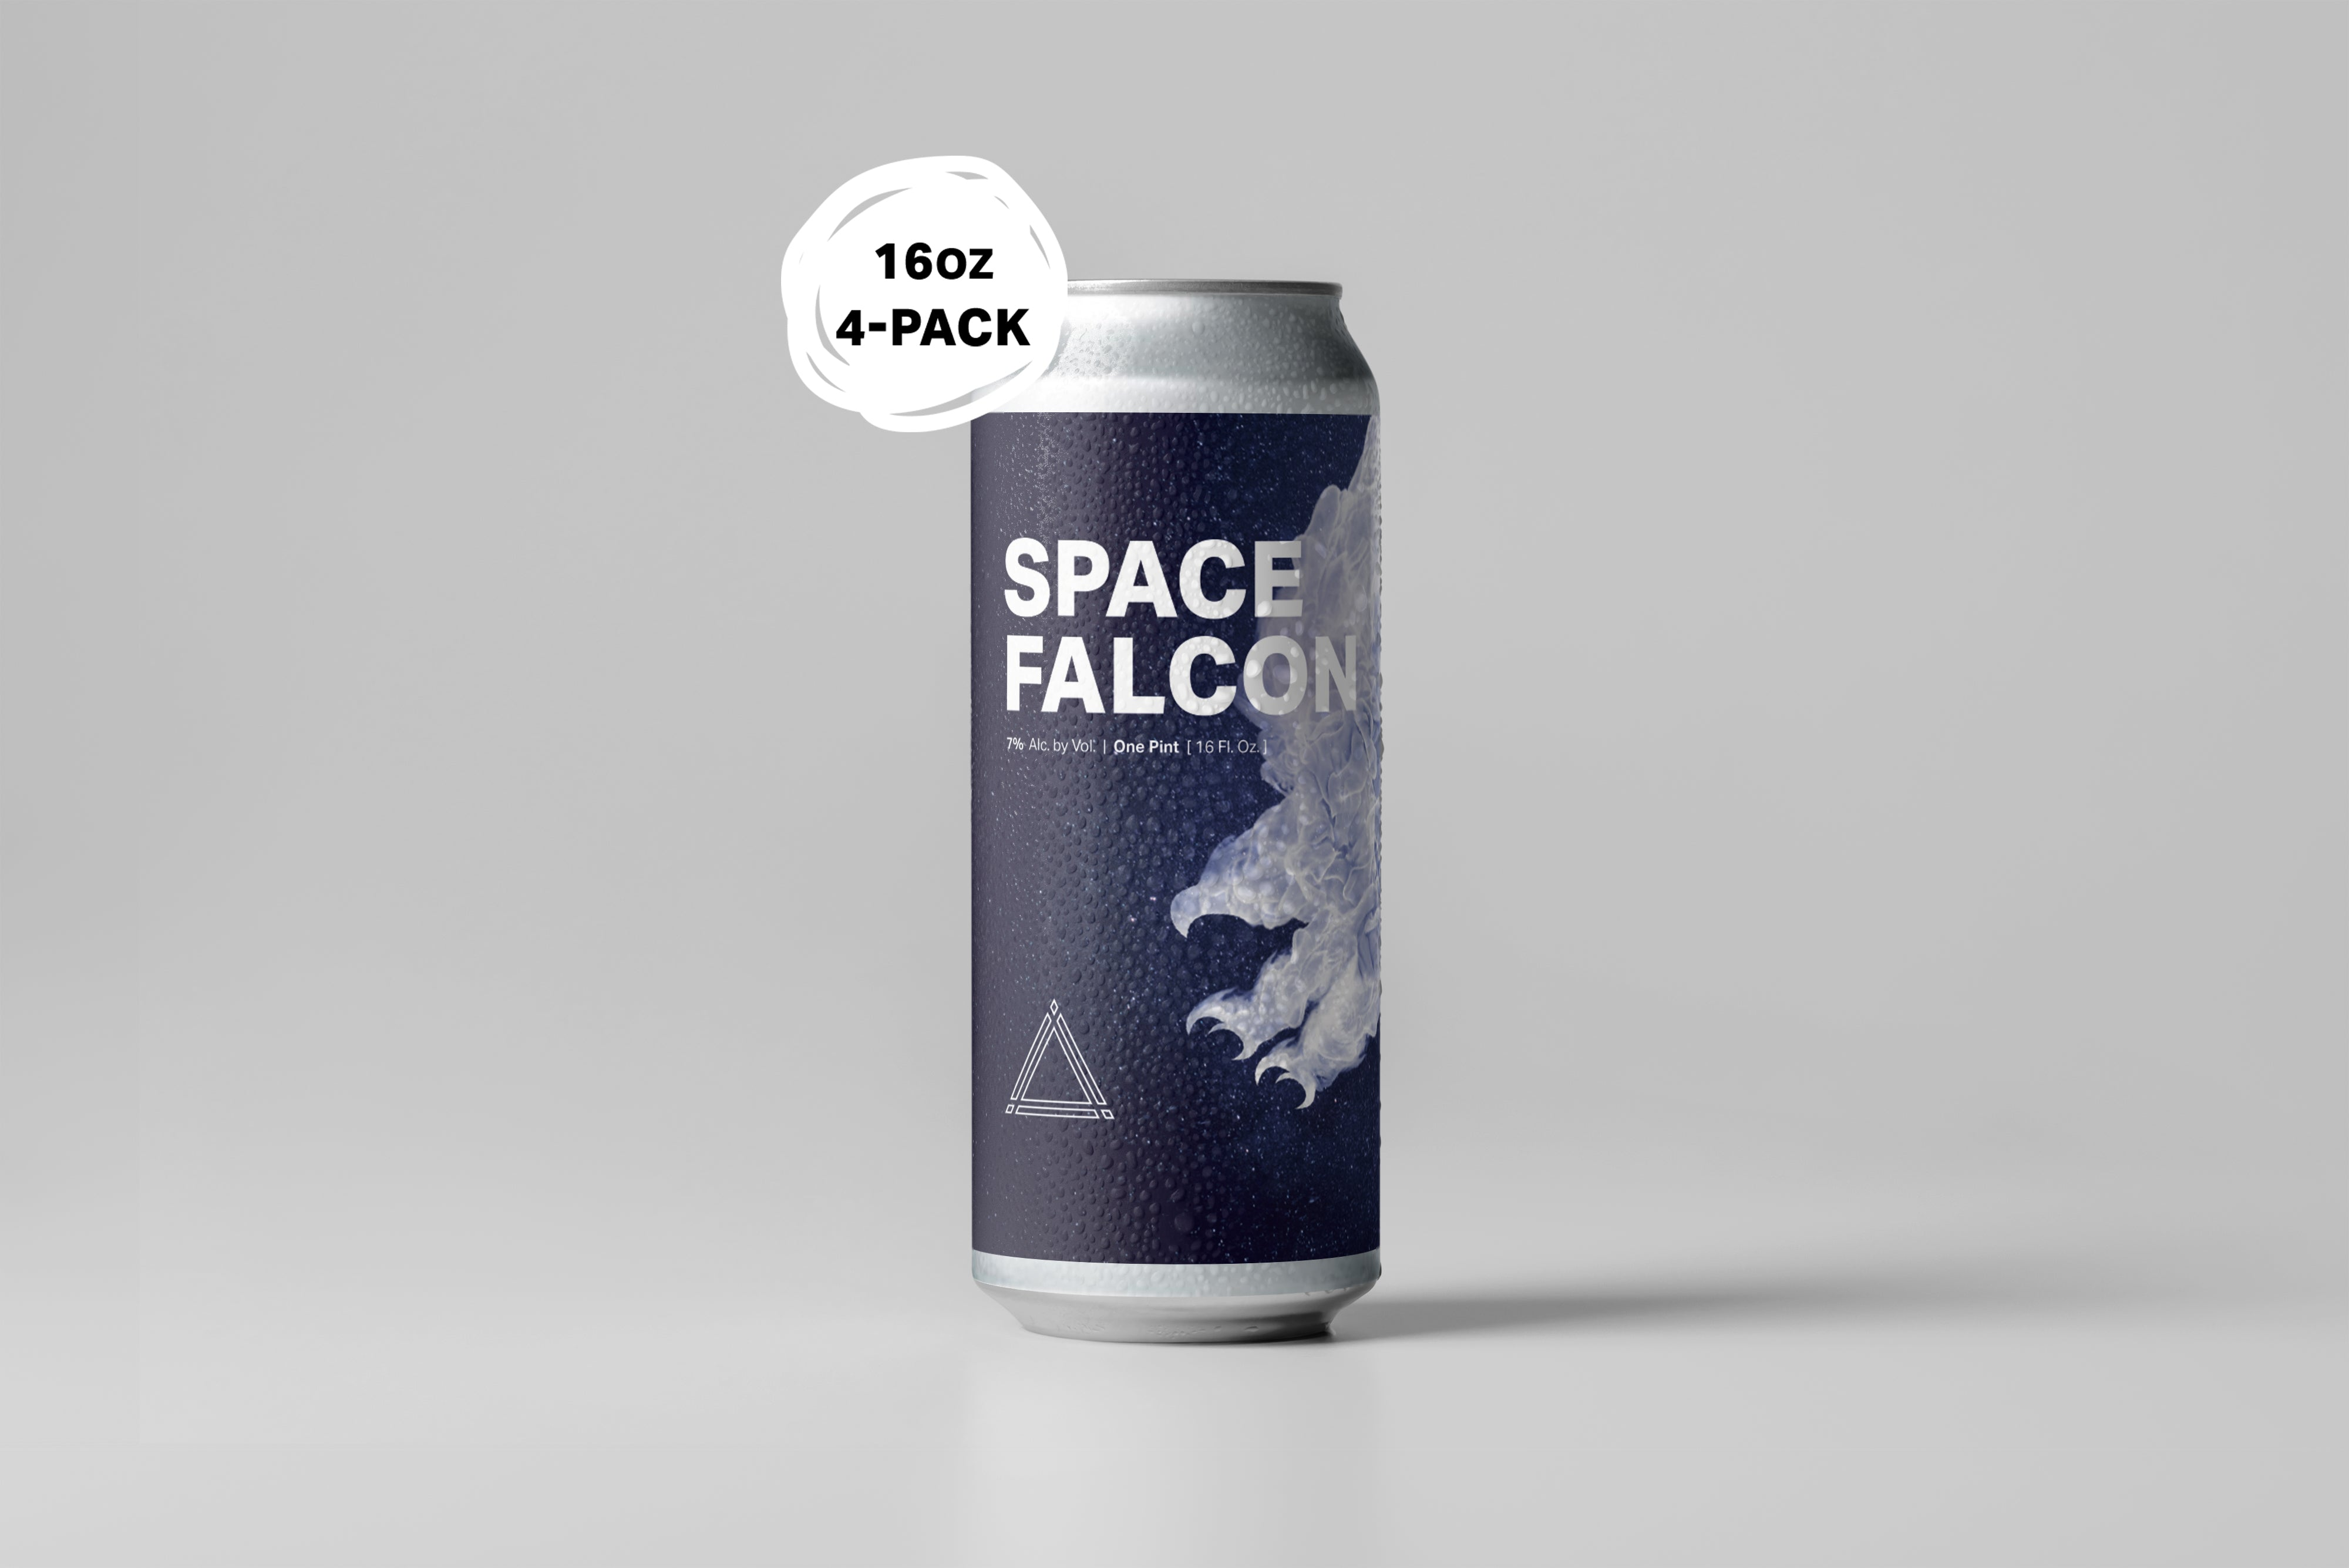 Space Falcon IPA